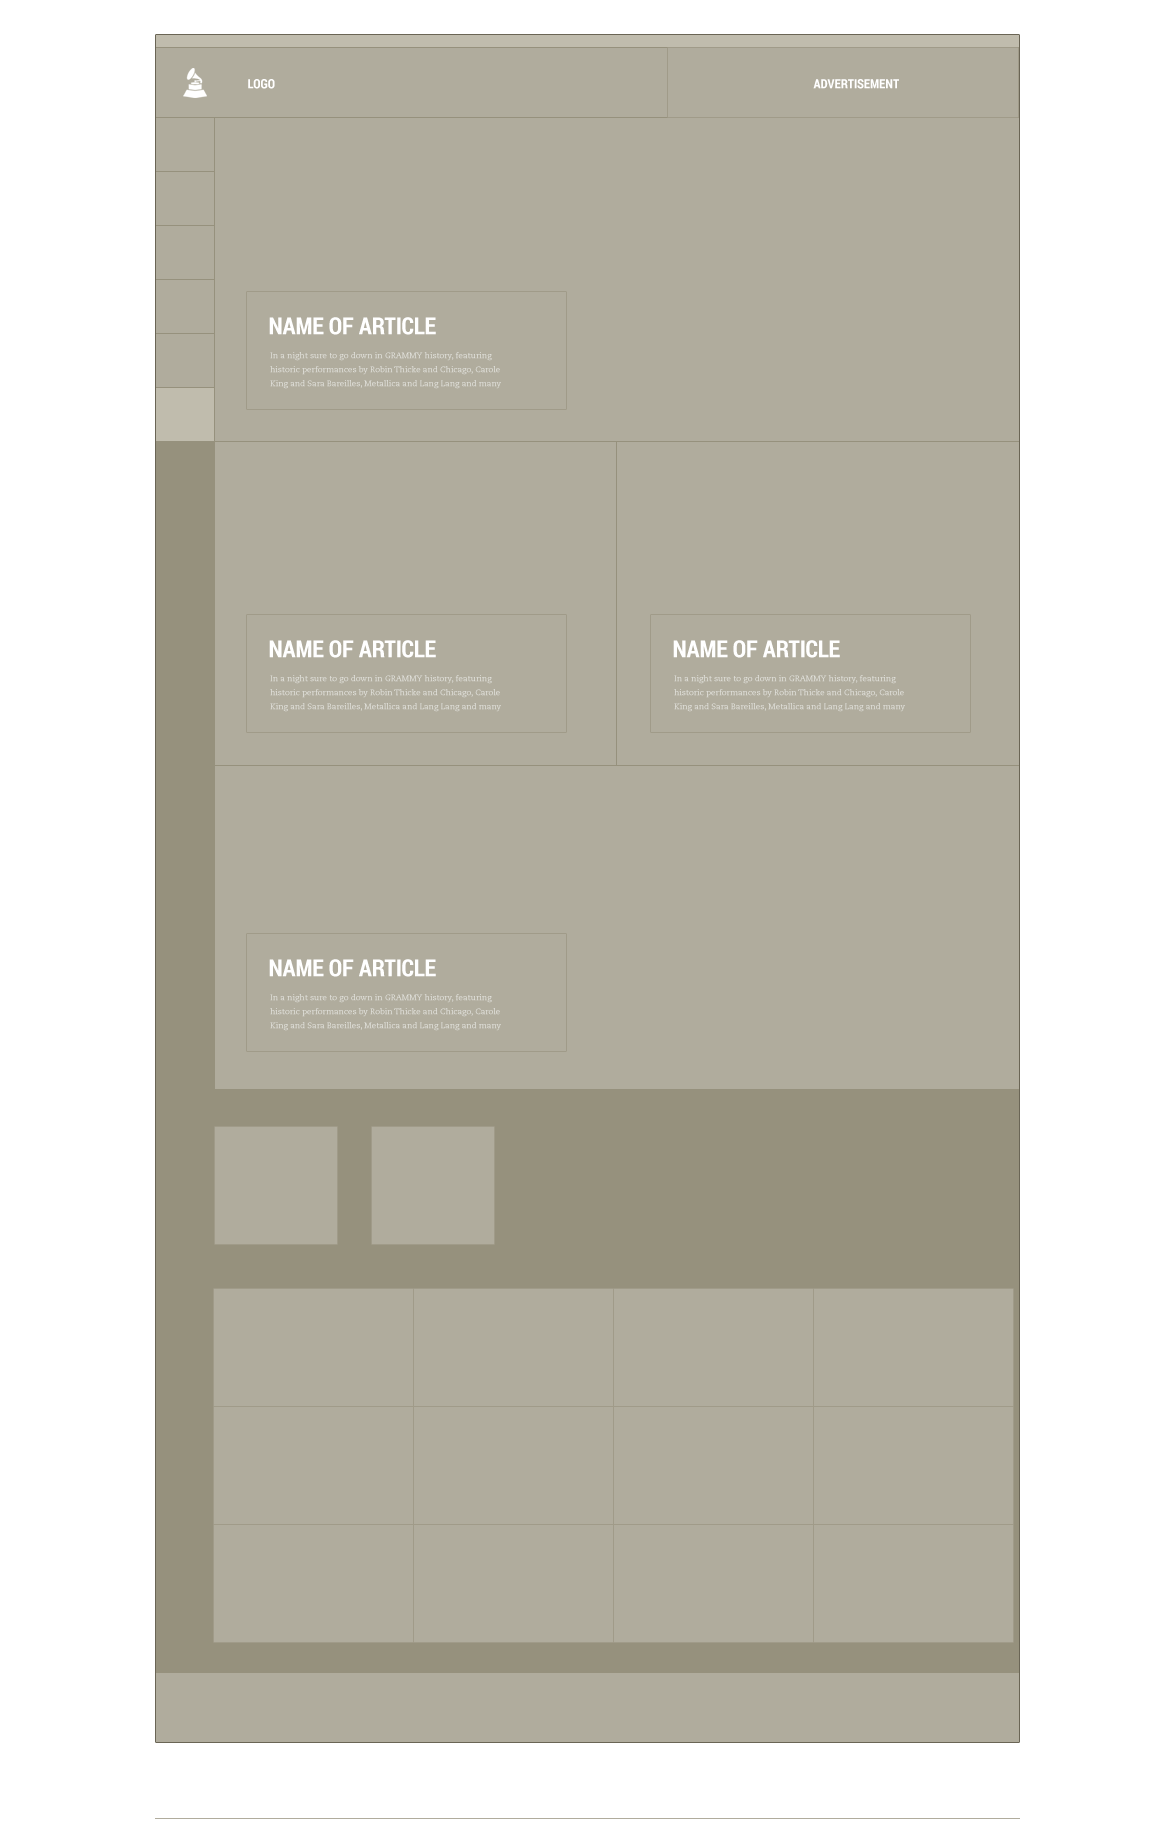 An example of the wireframing that was done while planning the layouts for the Grammy's website. This process was done in collaboration with the clients during the discovery phase.